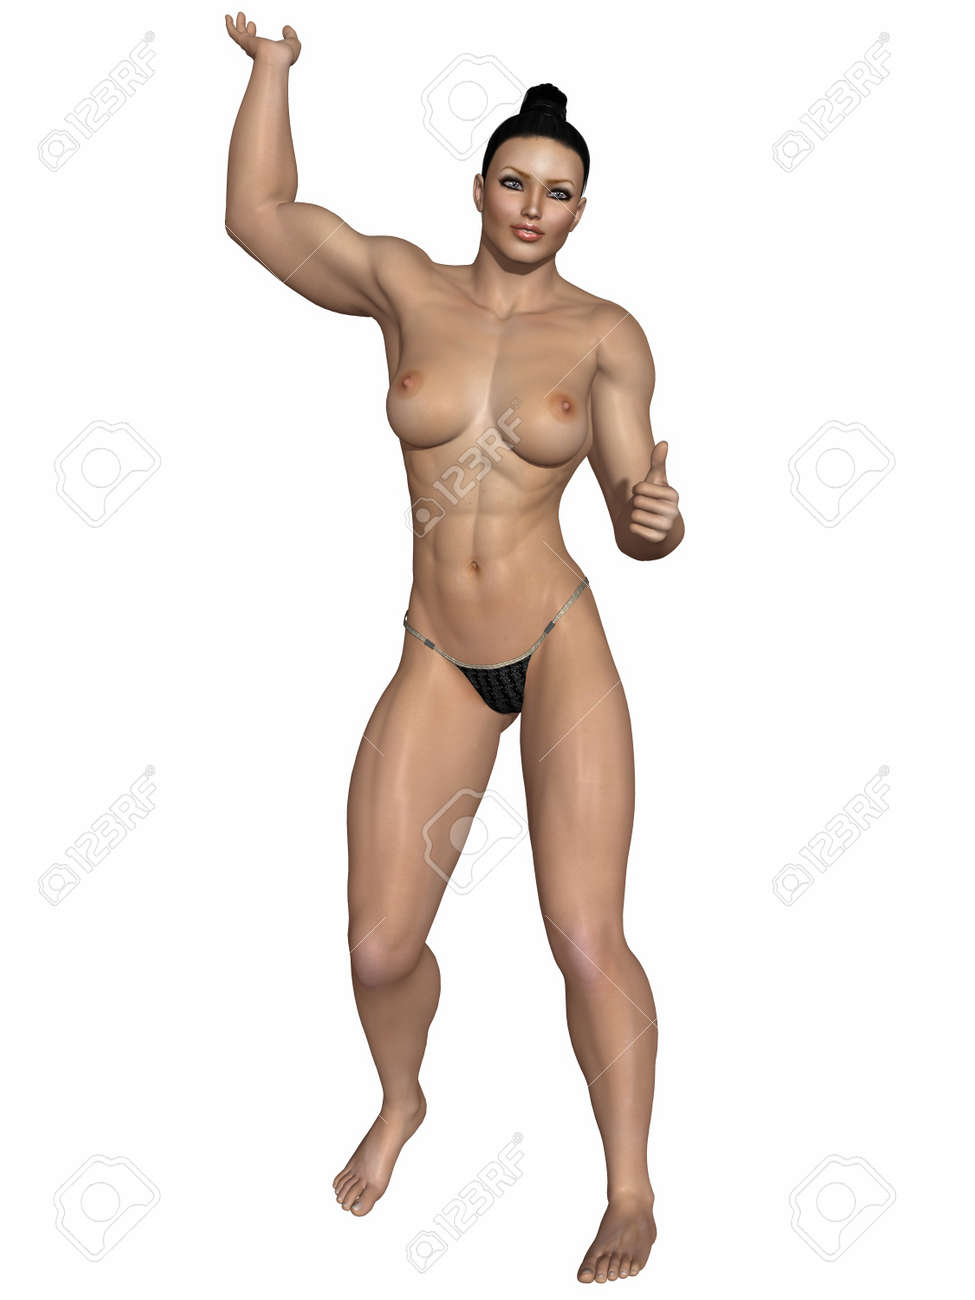 Sexy Strong Women Stock Photo Picture And Royalty Free Image